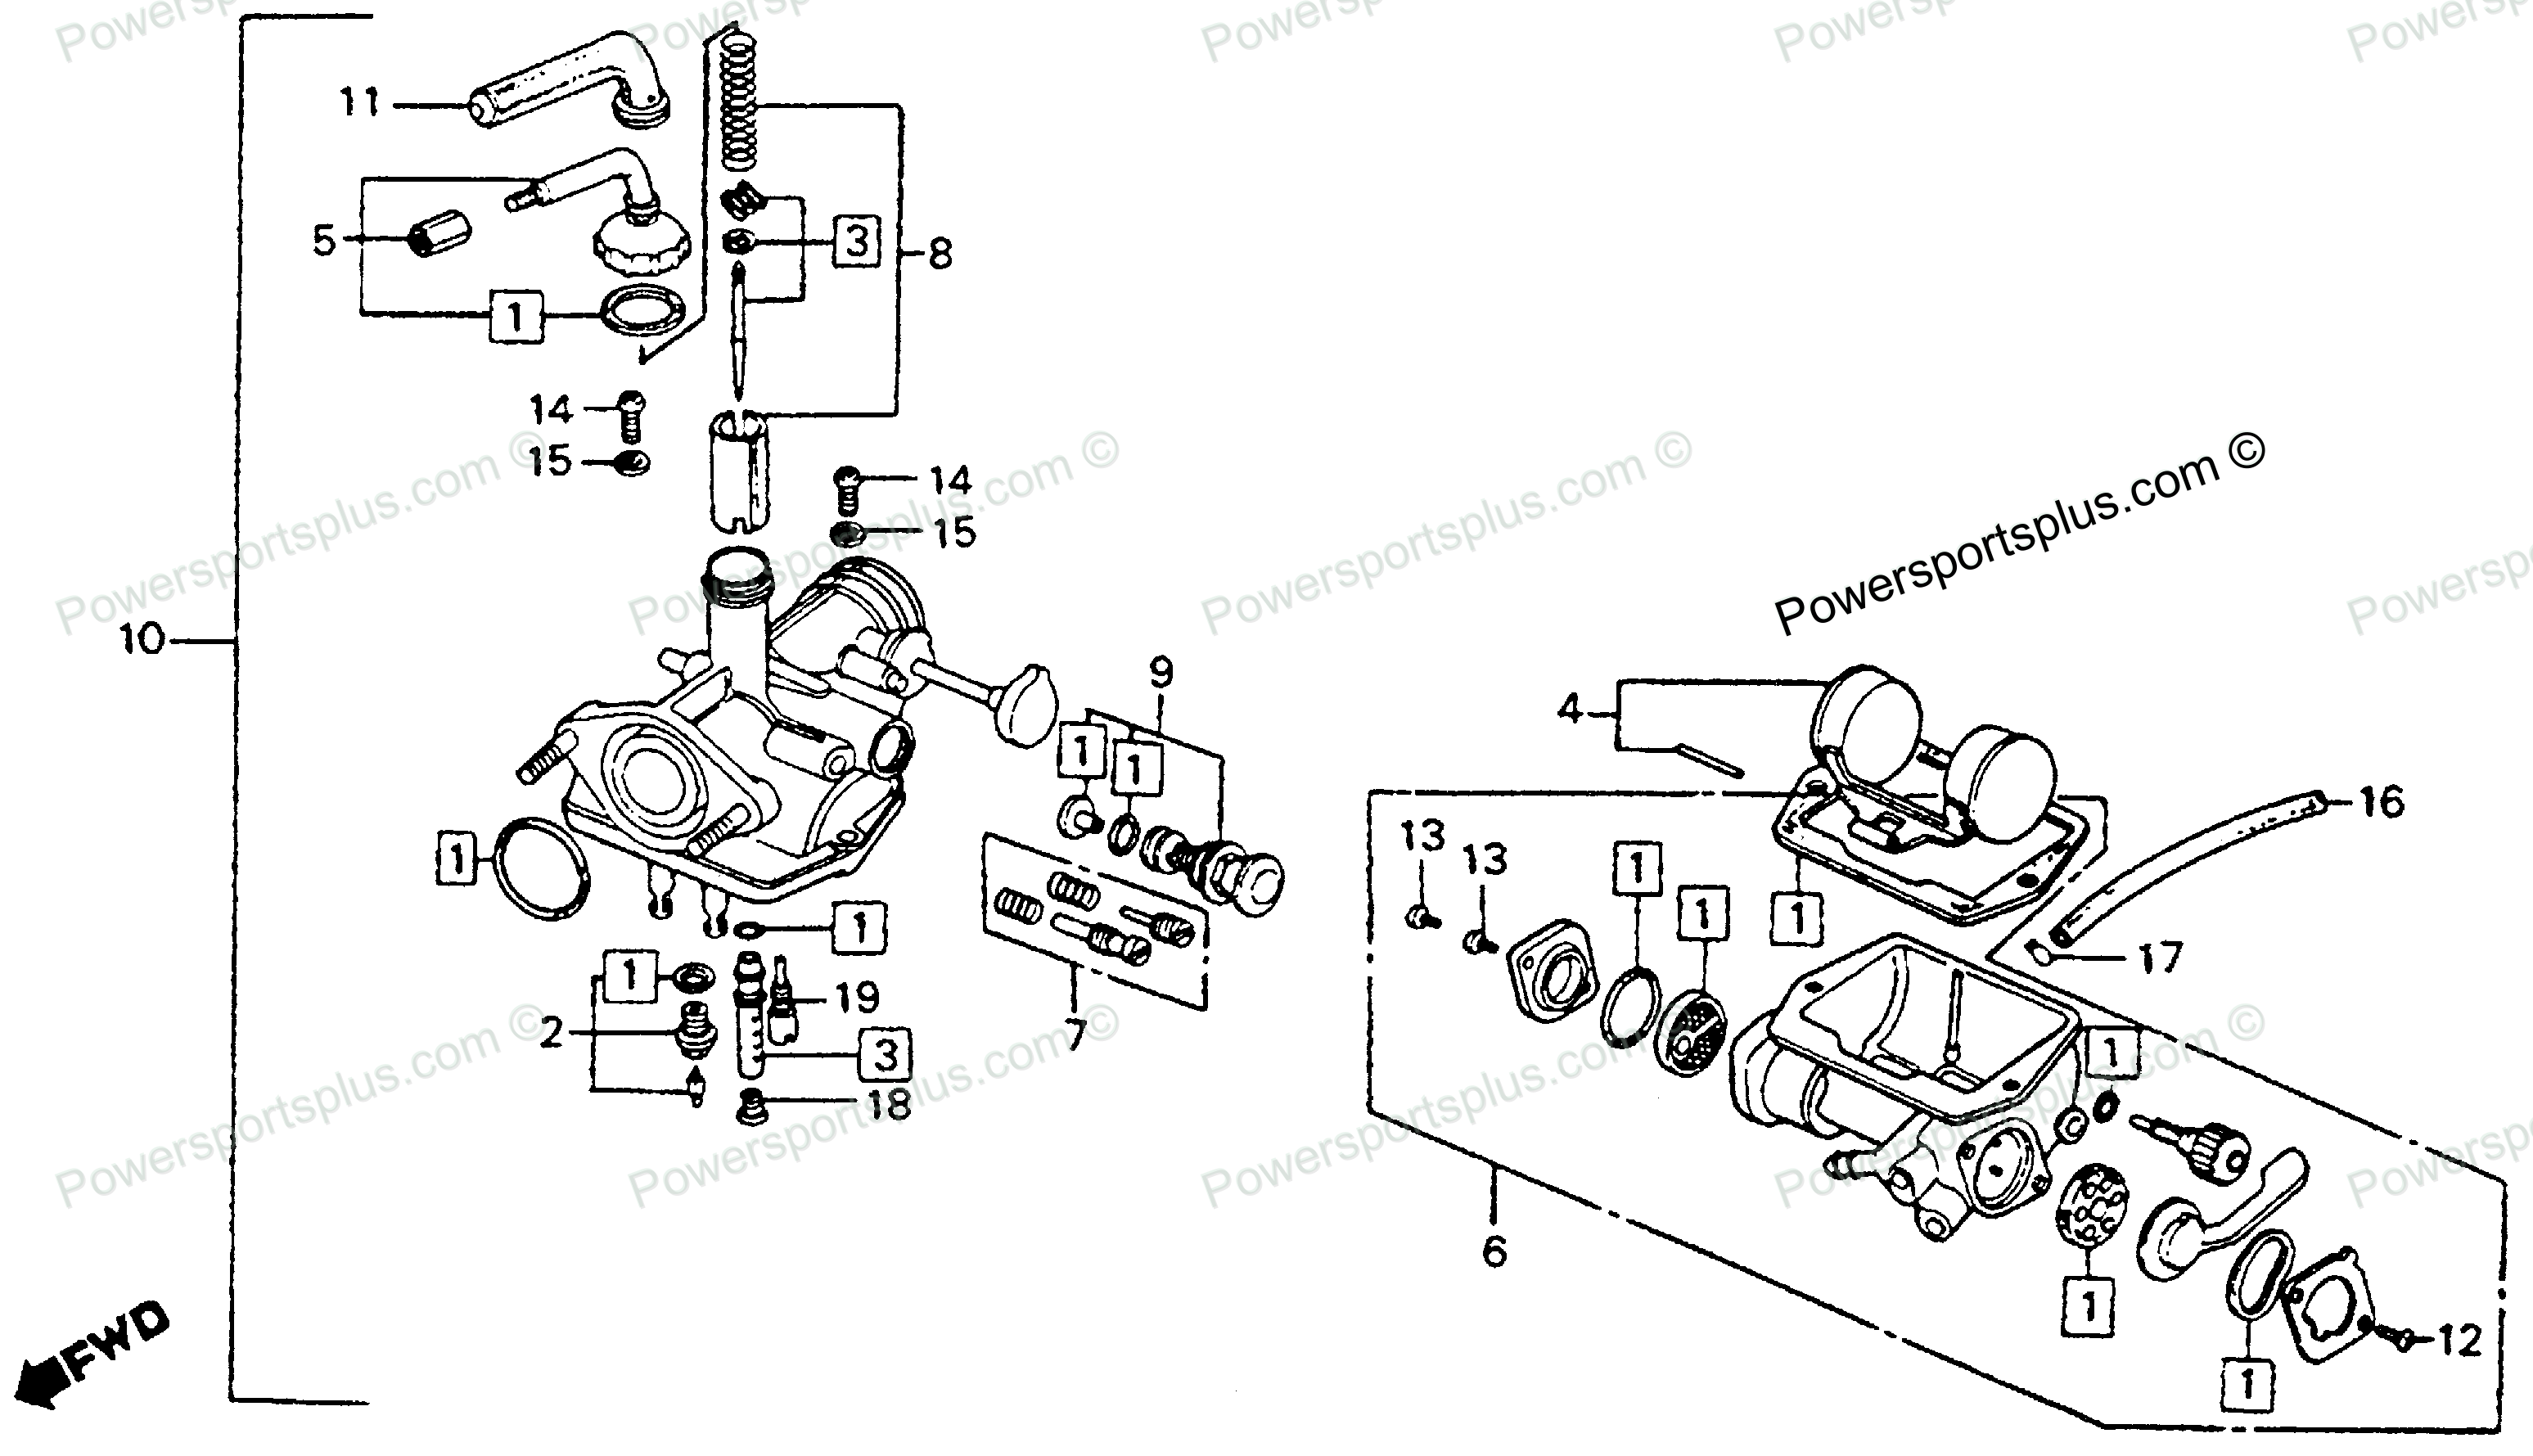 Diagram of Honda Motorcycle Parts 1976 CT90 A CARBURETOR K6-77 Diagram  Honda Motorcycle Parts